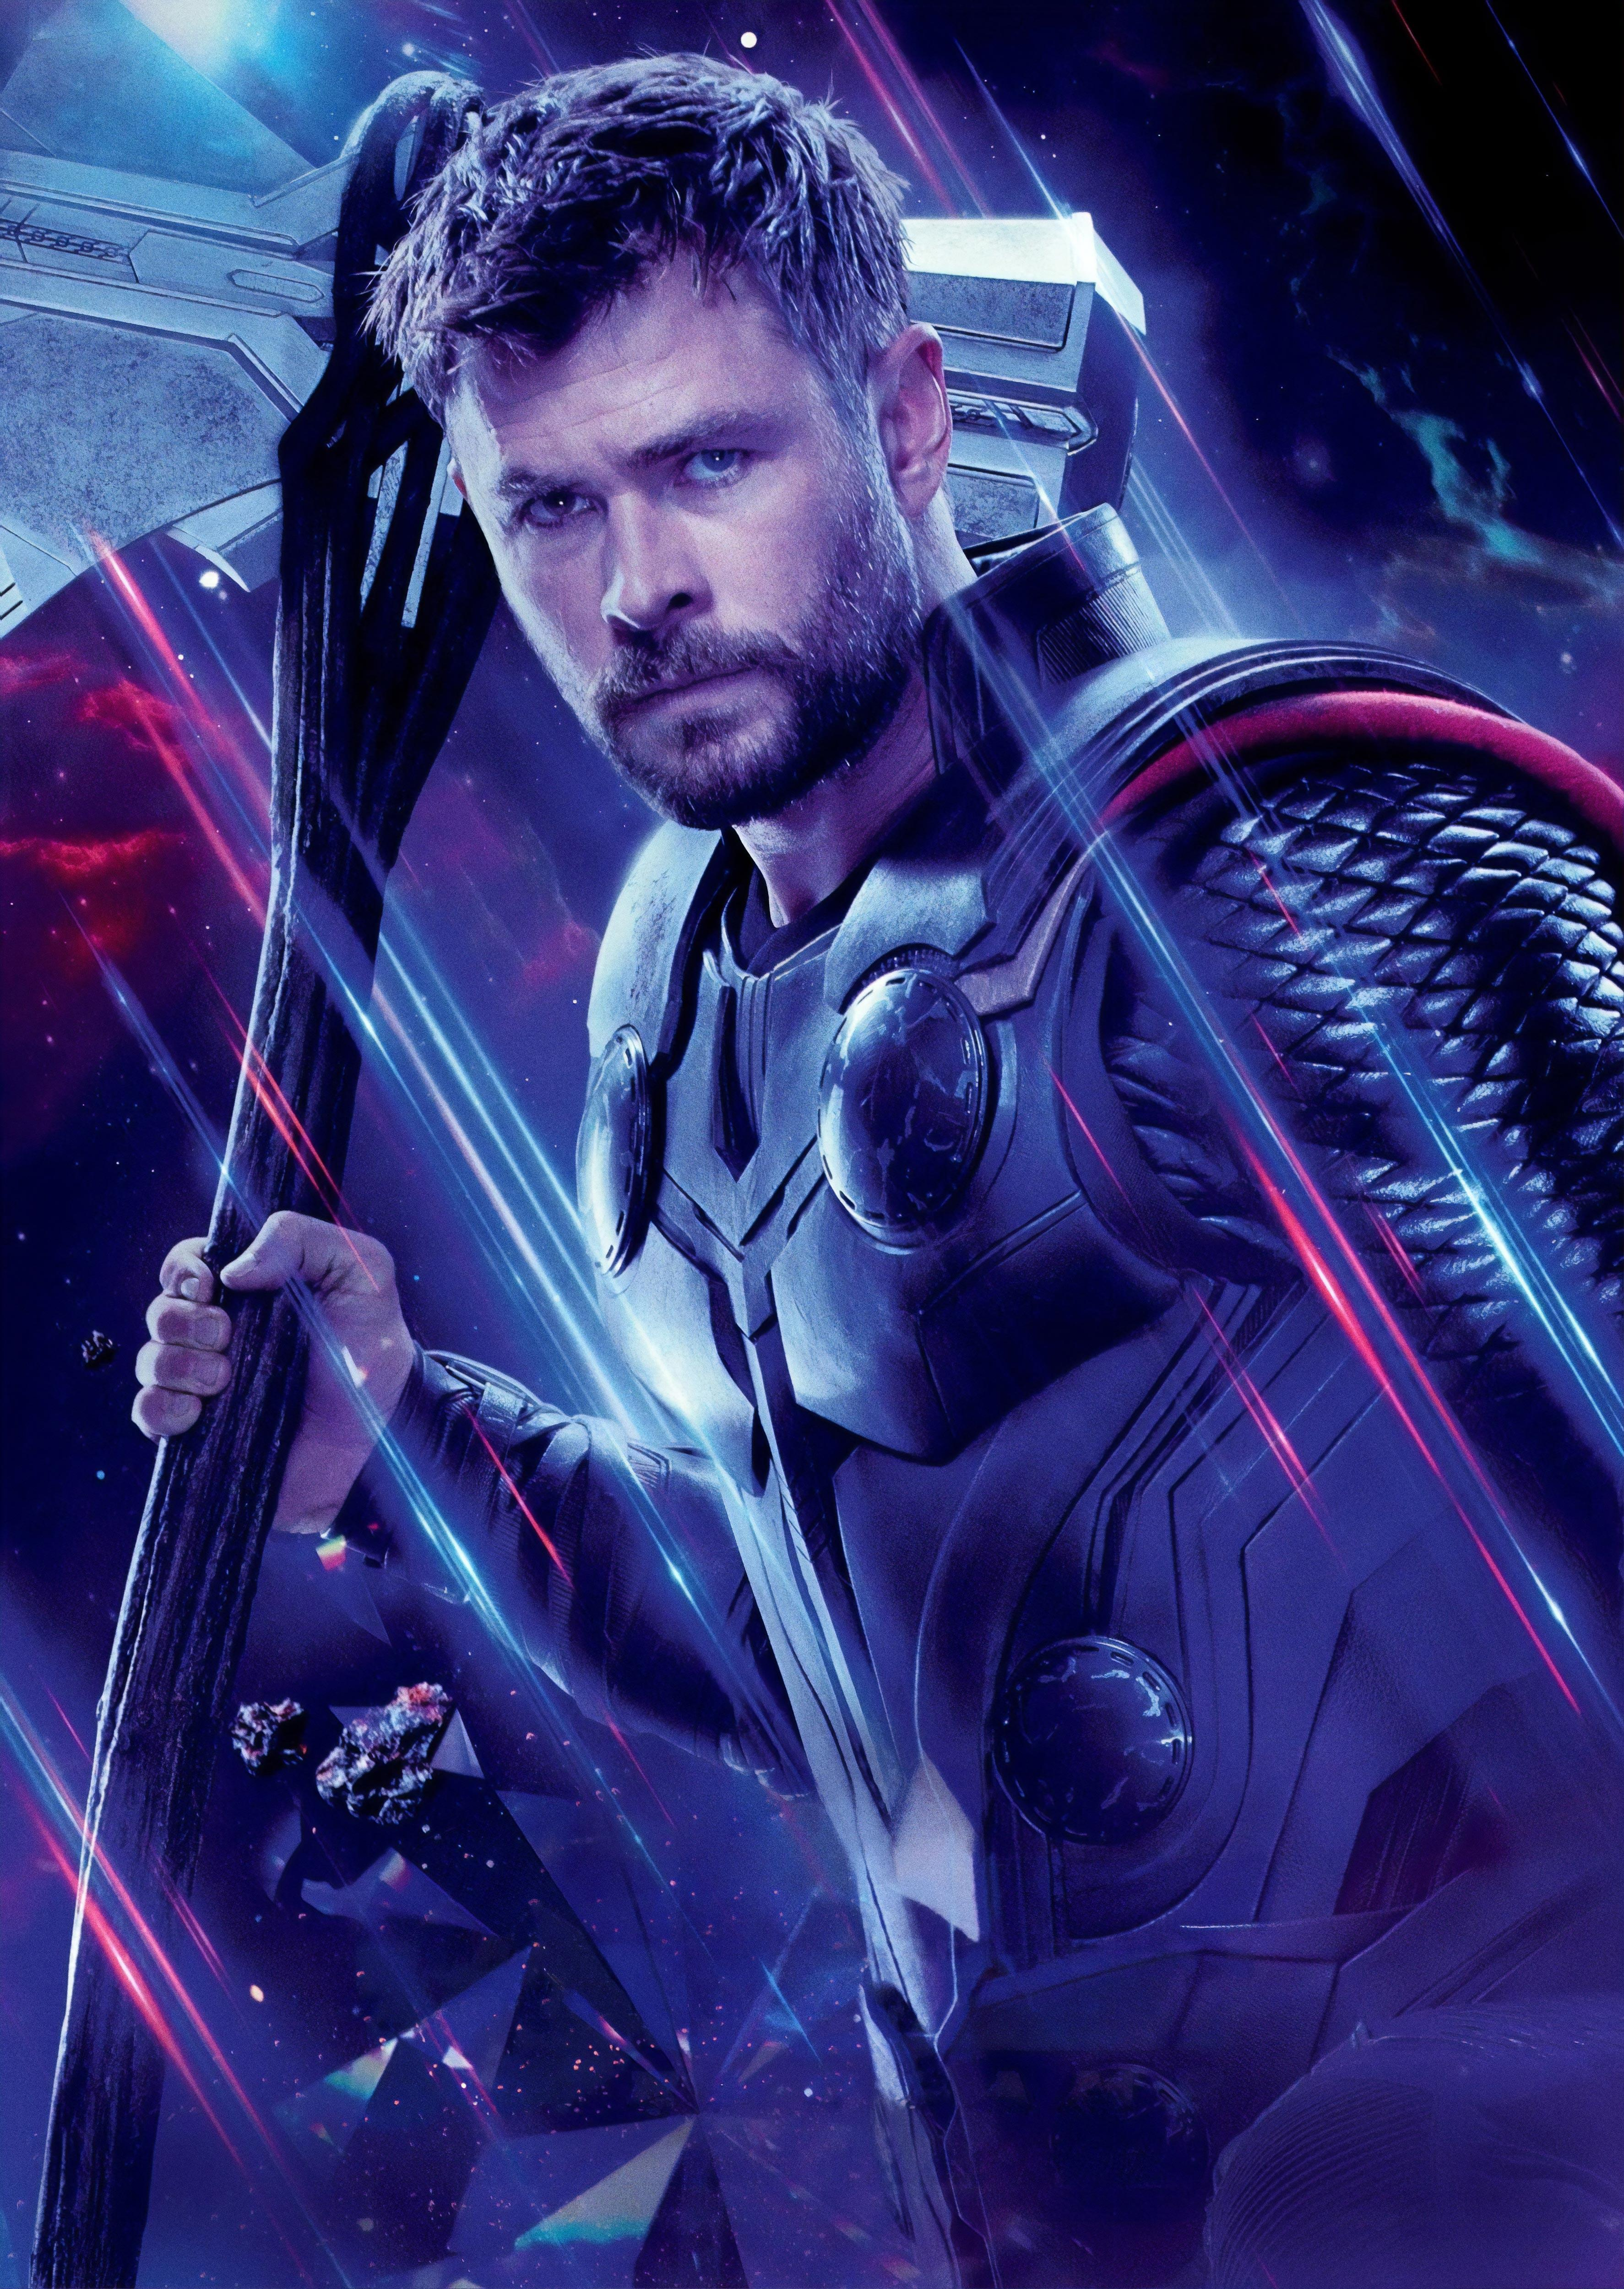 Thor in Avengers Endgame Wallpaper, HD Movies 4K Wallpapers, Image